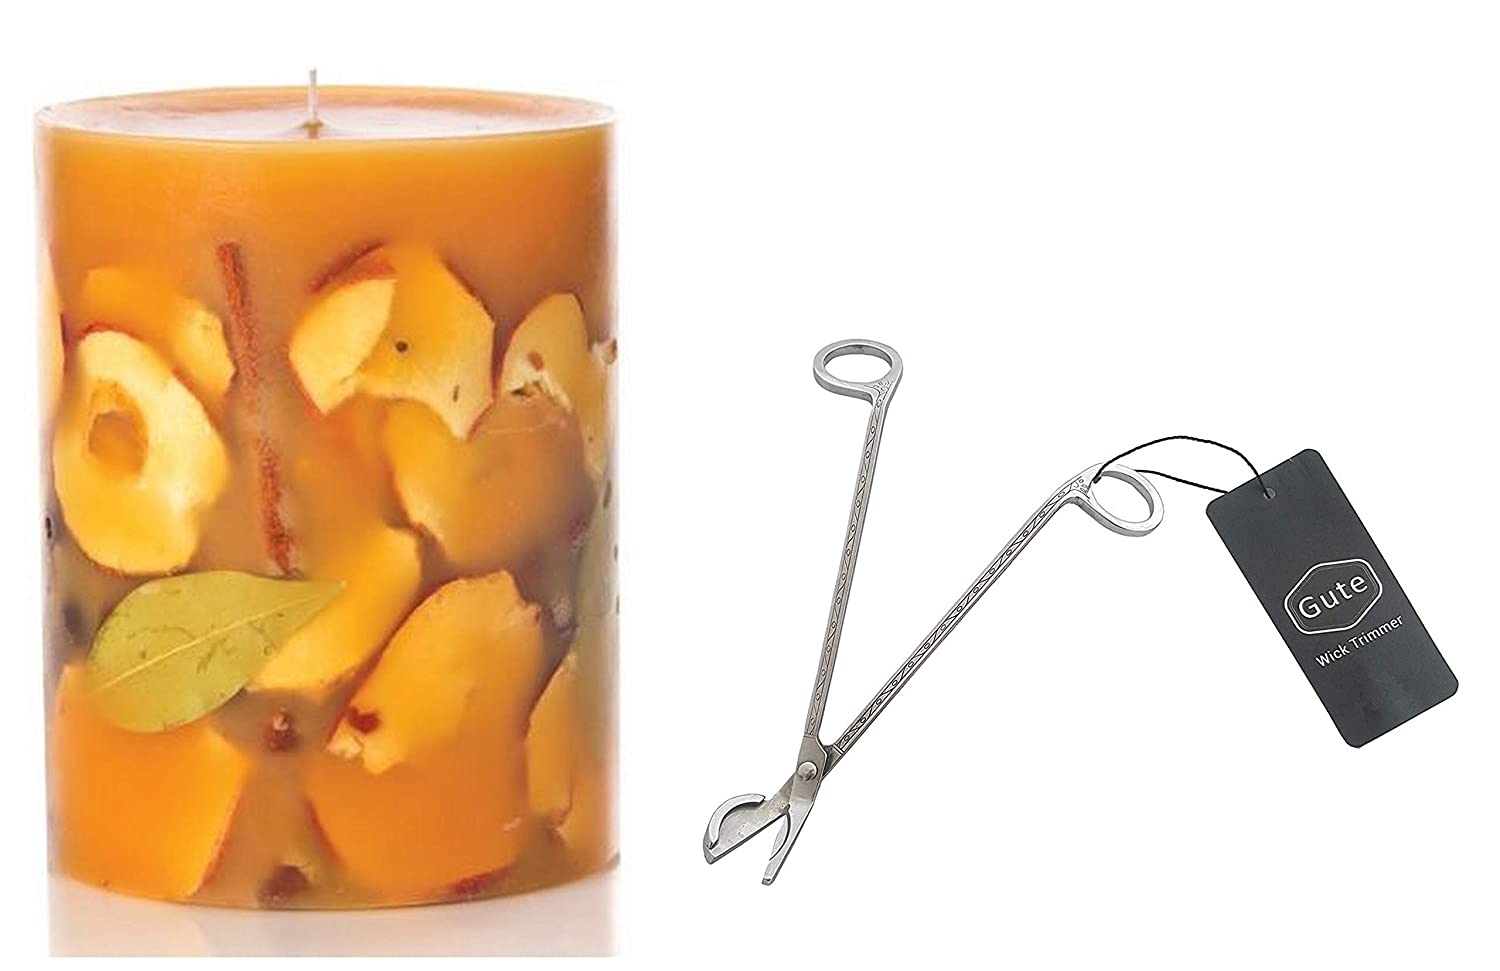 """Gute Rosy Rings Spicy Apple Botanical Candle, 6.5"""" Tall, 200 Hour Burn time, Bundle Wick Cutter (2 Items)"""